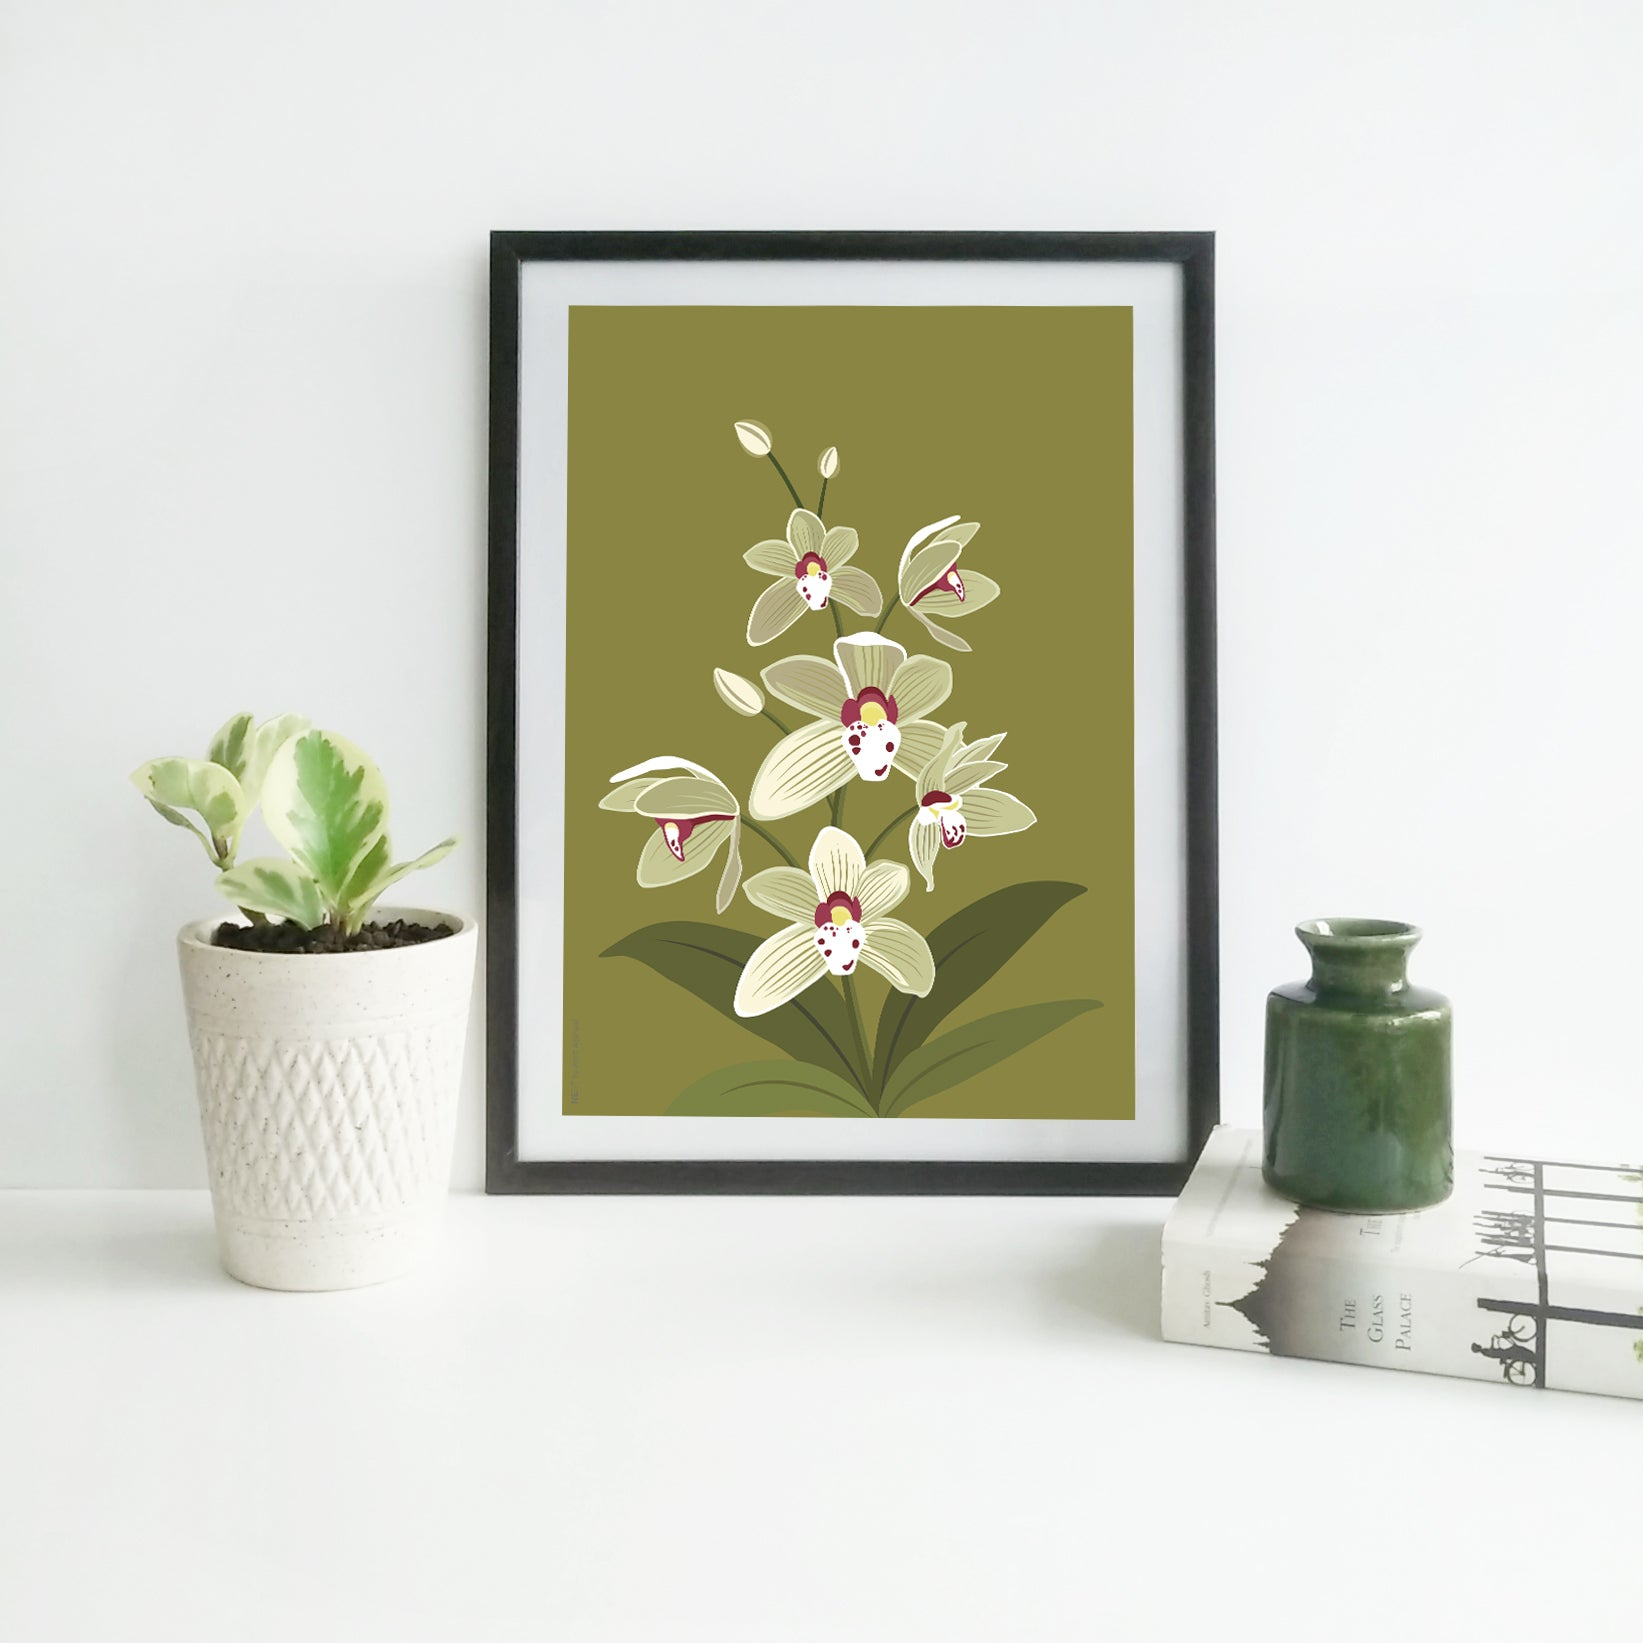 Cymbidium Alison - Print Only - NEST by Arpit Agarwal